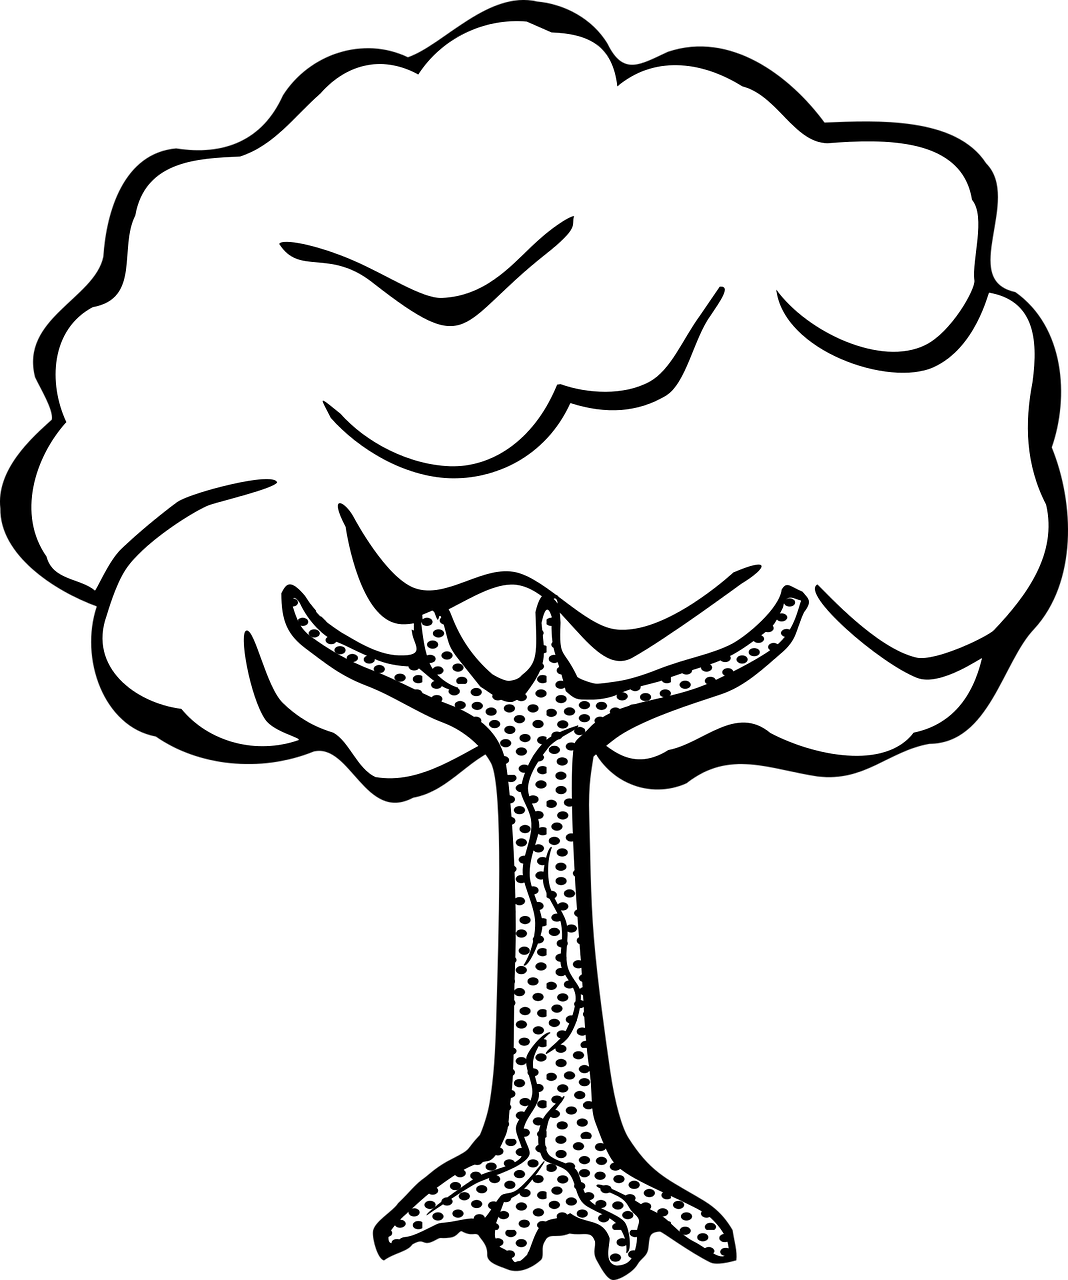 Drawing raindrops printable. Free tree coloring pages